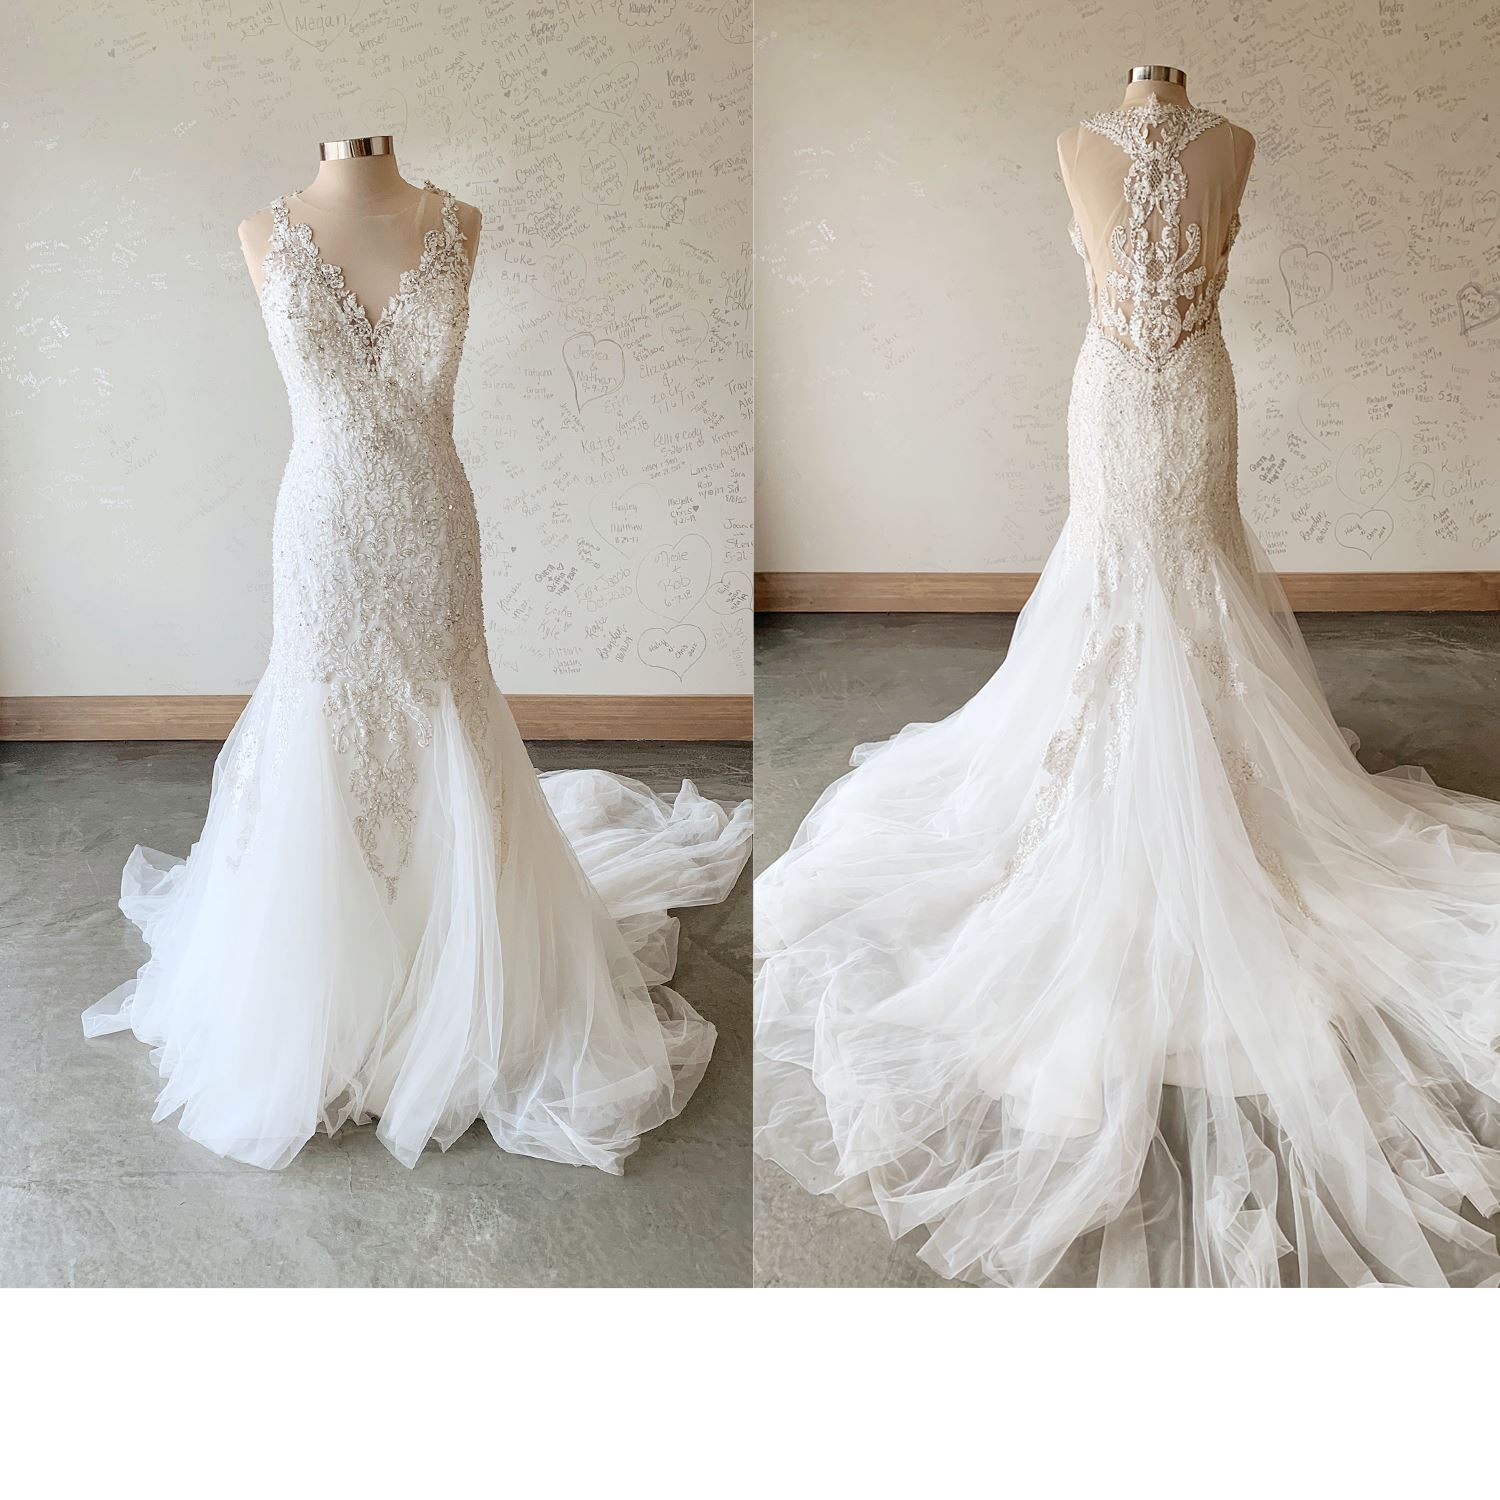 Ariana - Size 16 - Ivory - Originally priced $1499 - Sample box price $999